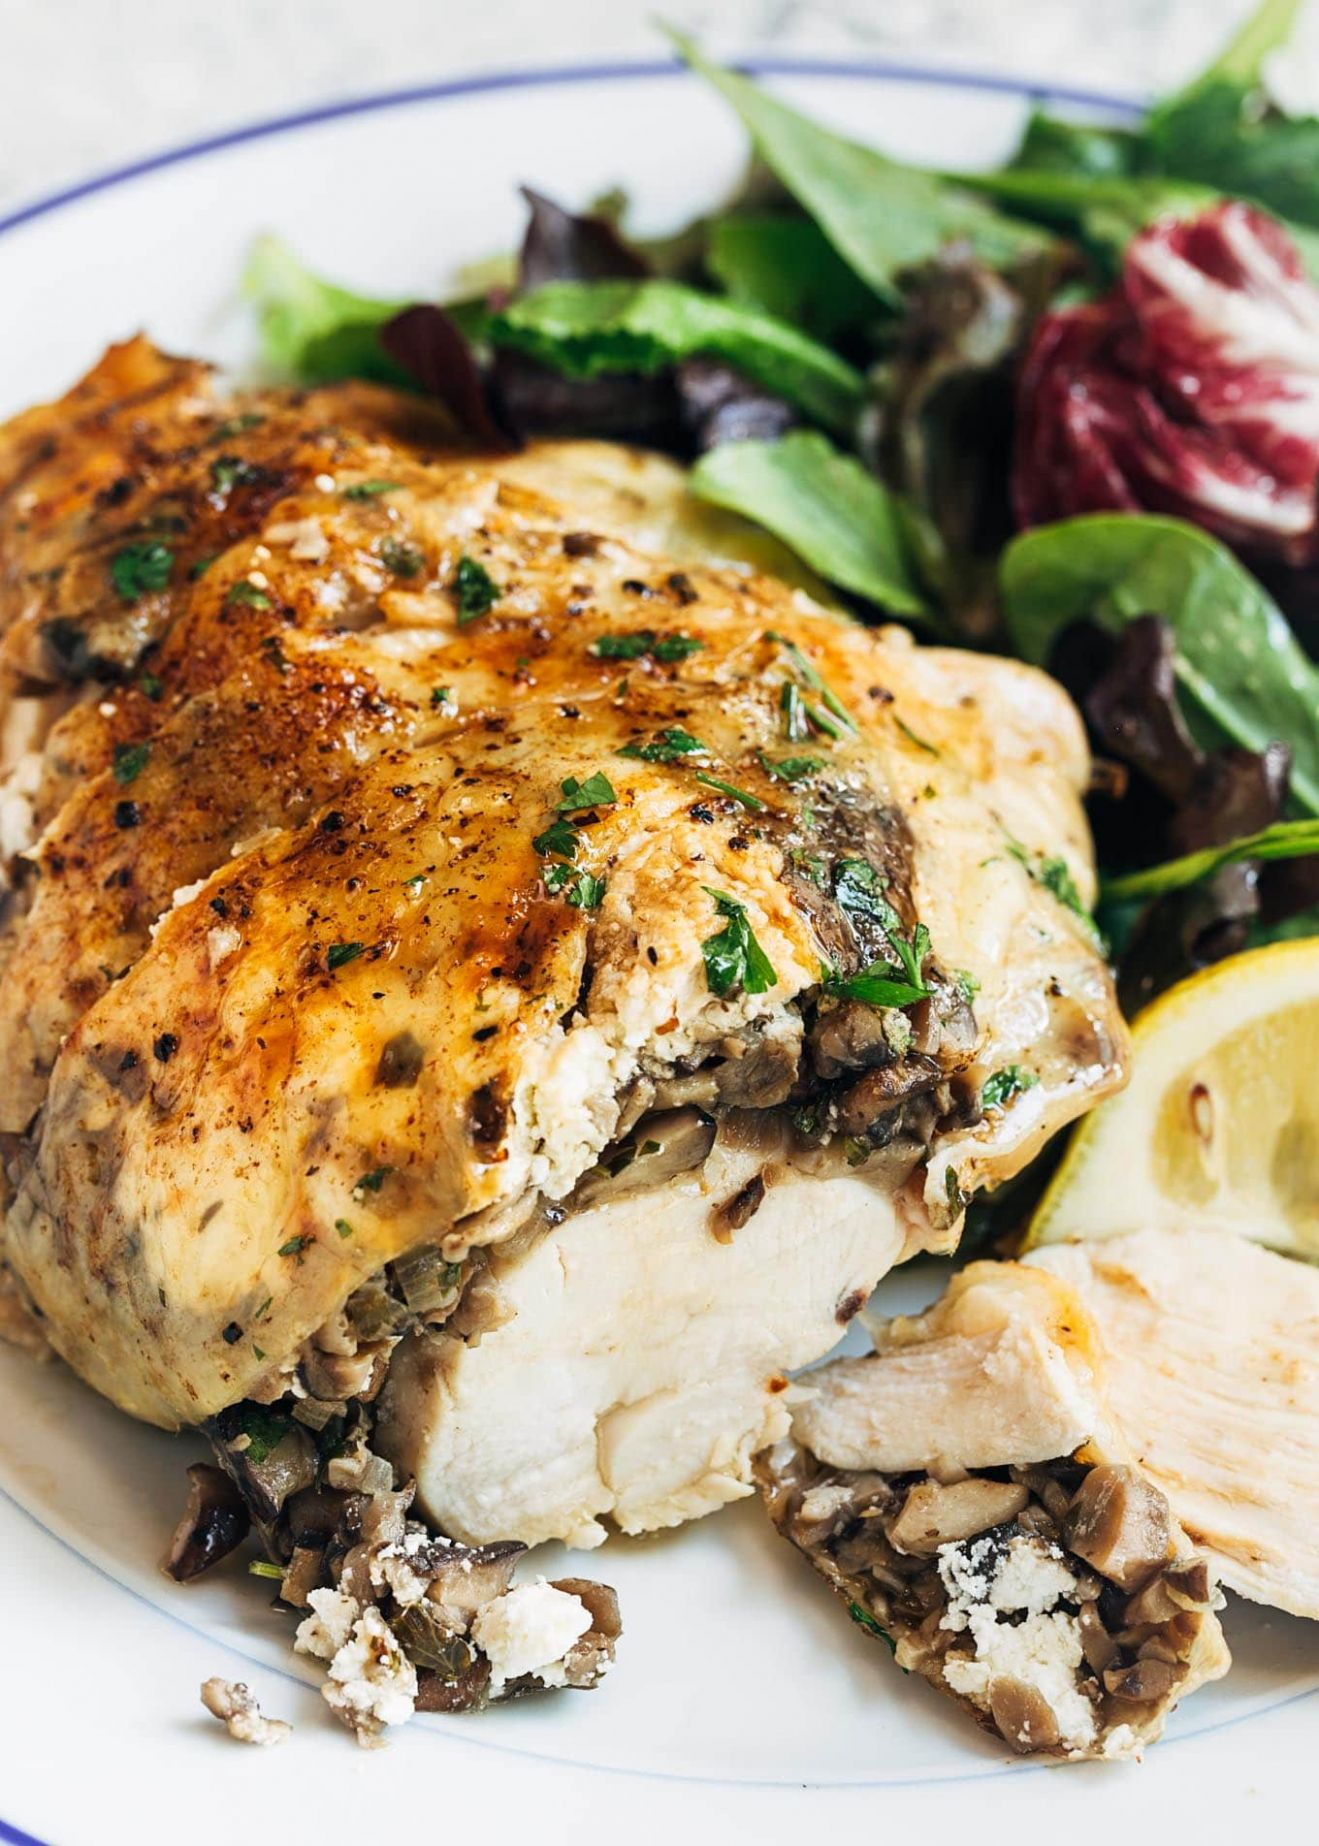 Stuffed Chicken Breasts with Mushrooms & Goat Cheese - Recipes Chicken Breast With Mushrooms